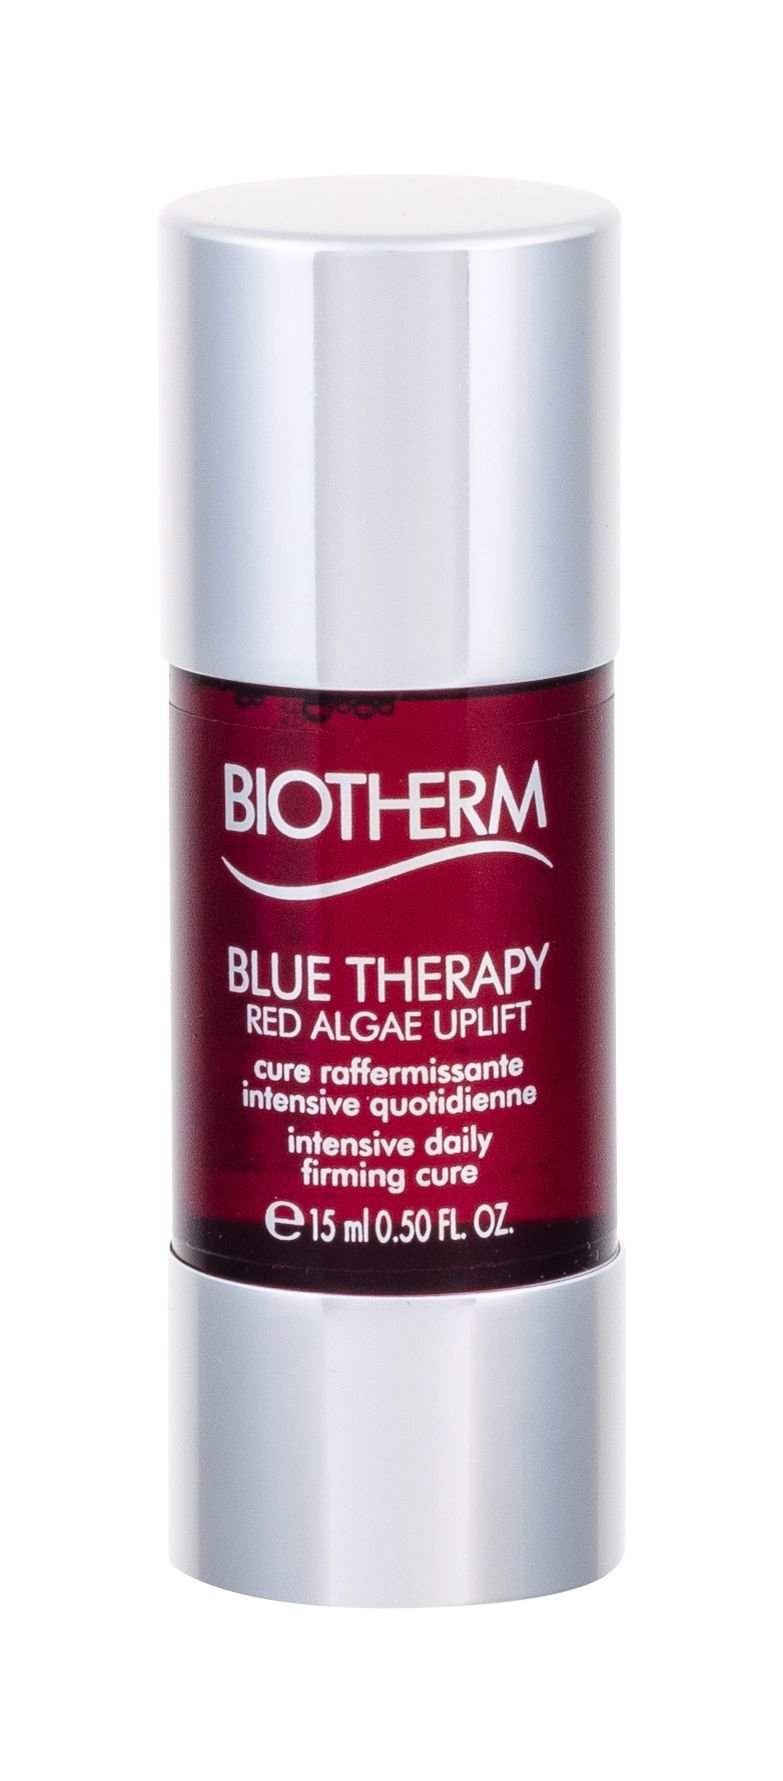 Biotherm Blue Therapy Skin Serum 15ml